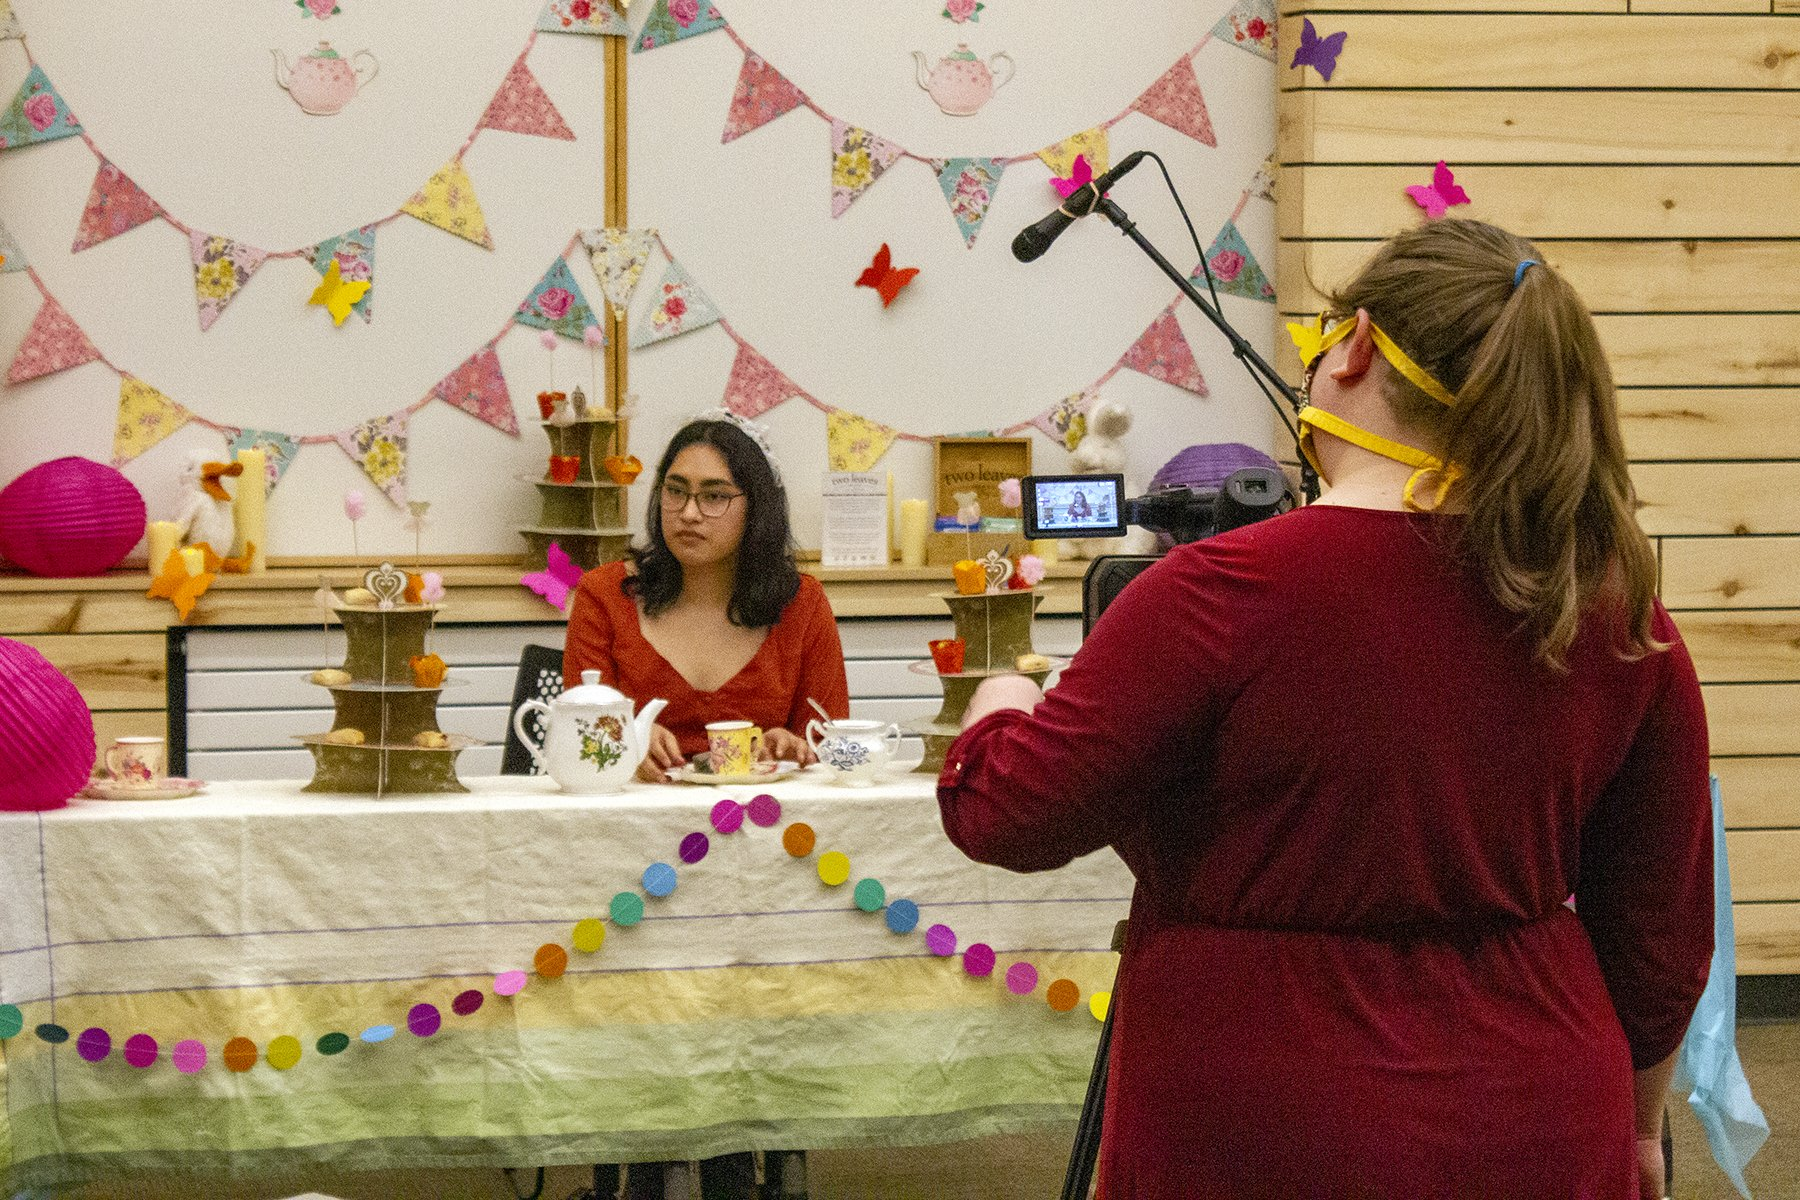 BRL staff members chipped in to make the tea tutorial video. Photos by James Steindler